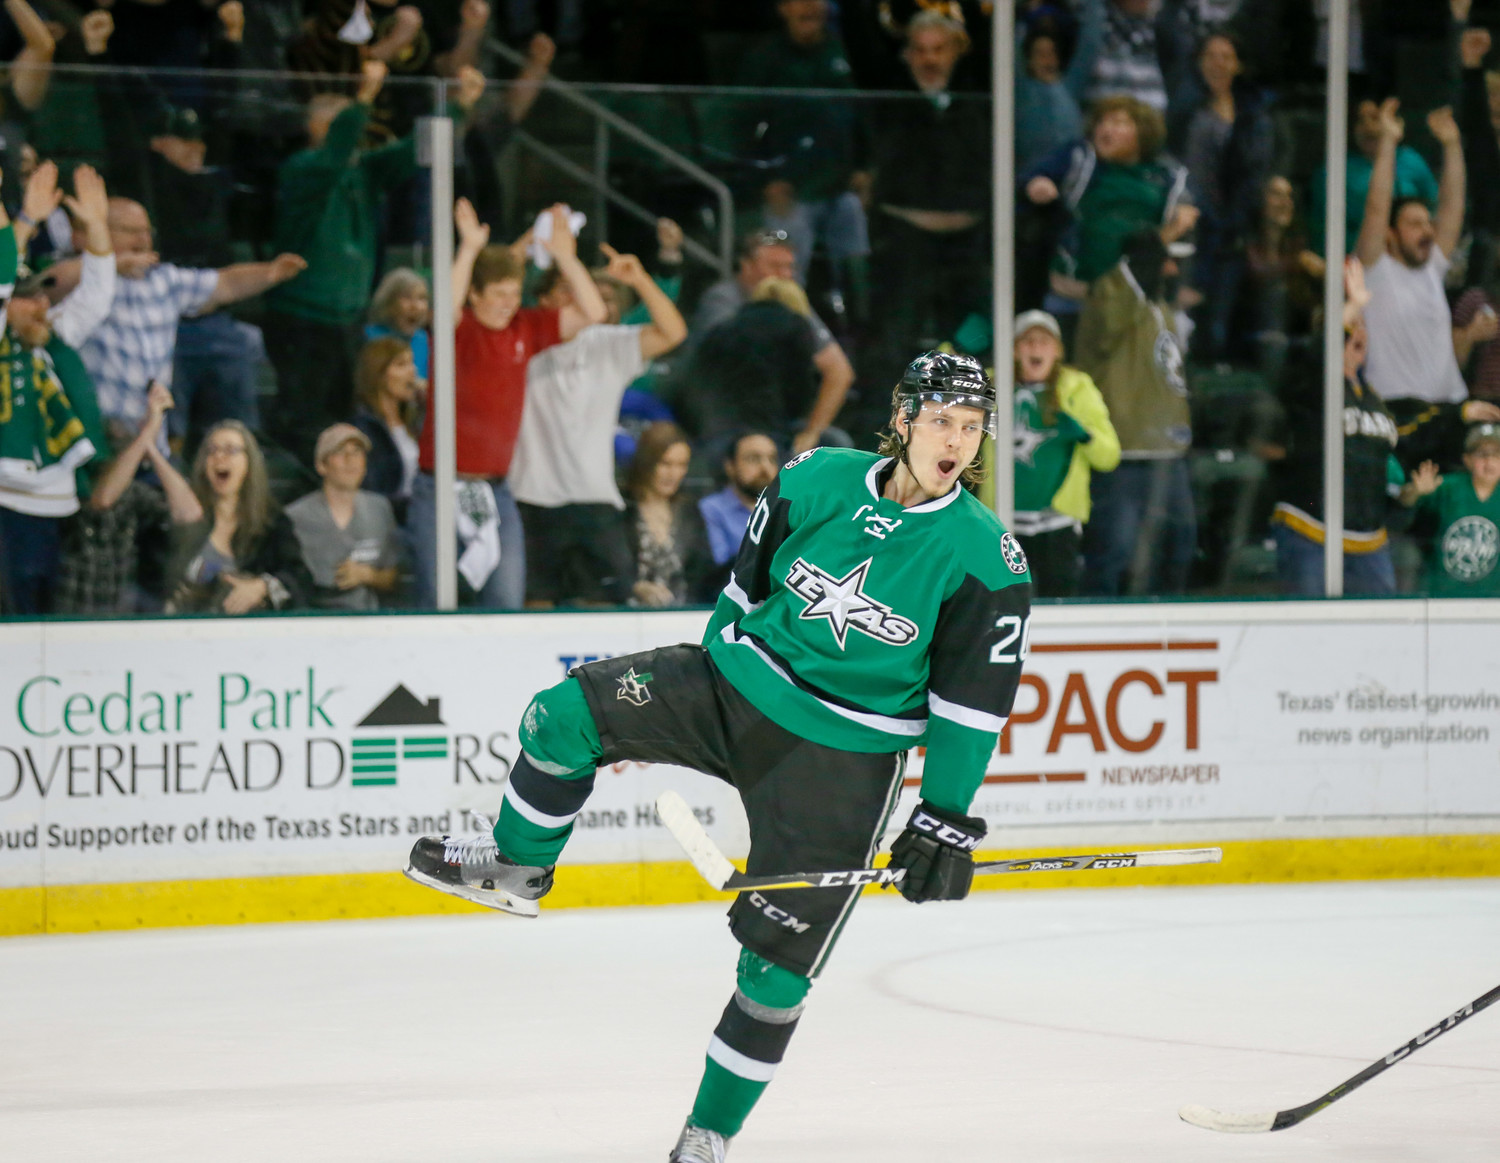 Roope Hintz scored the game-winning goal in overtime Monday night and the Stars beat the Rockford IceHogs 2-1 to win the Western Conference.